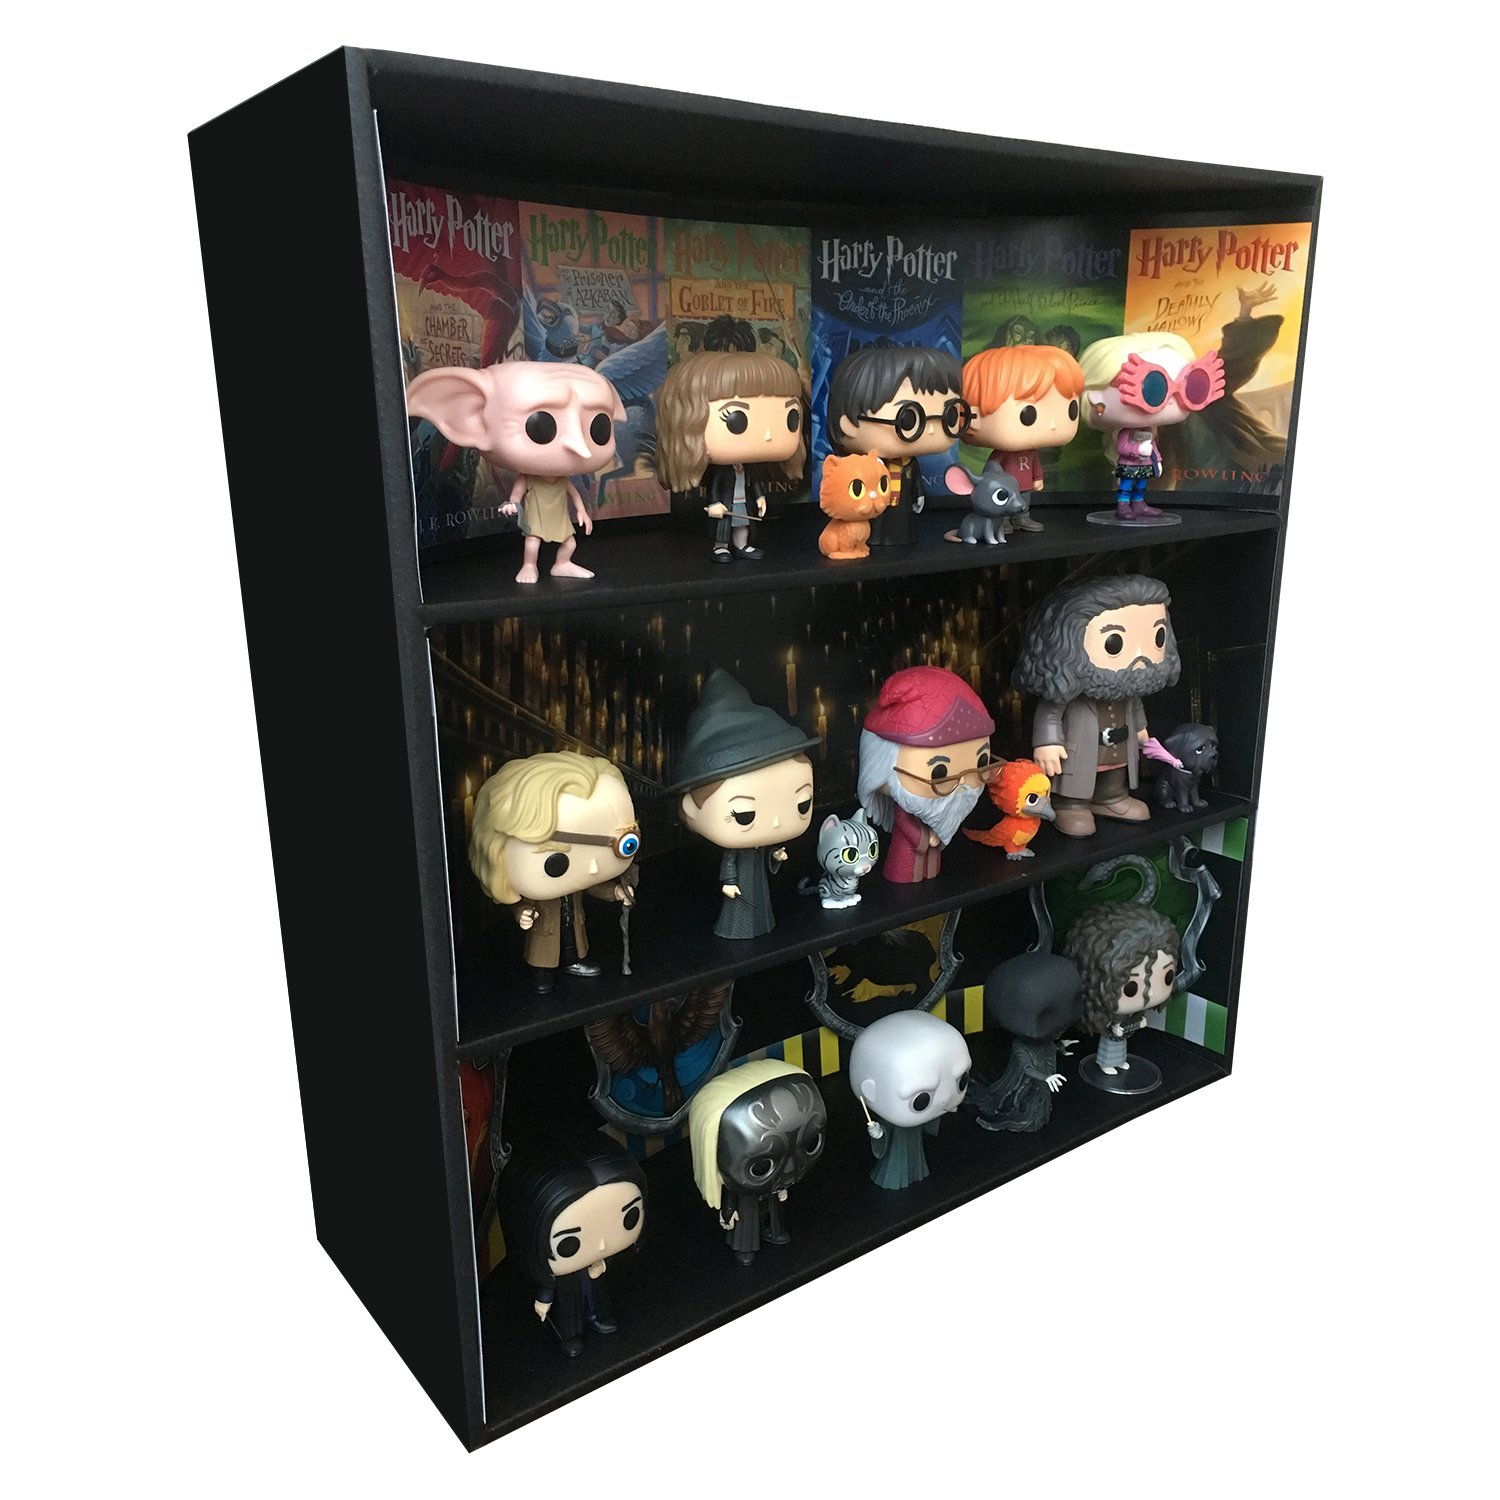 1 Display Geek Exclusive Stackable Toy Shelf for 4 in. Funko Pops with 3 backdrop inserts, Black Corrugated Cardboard Inc.